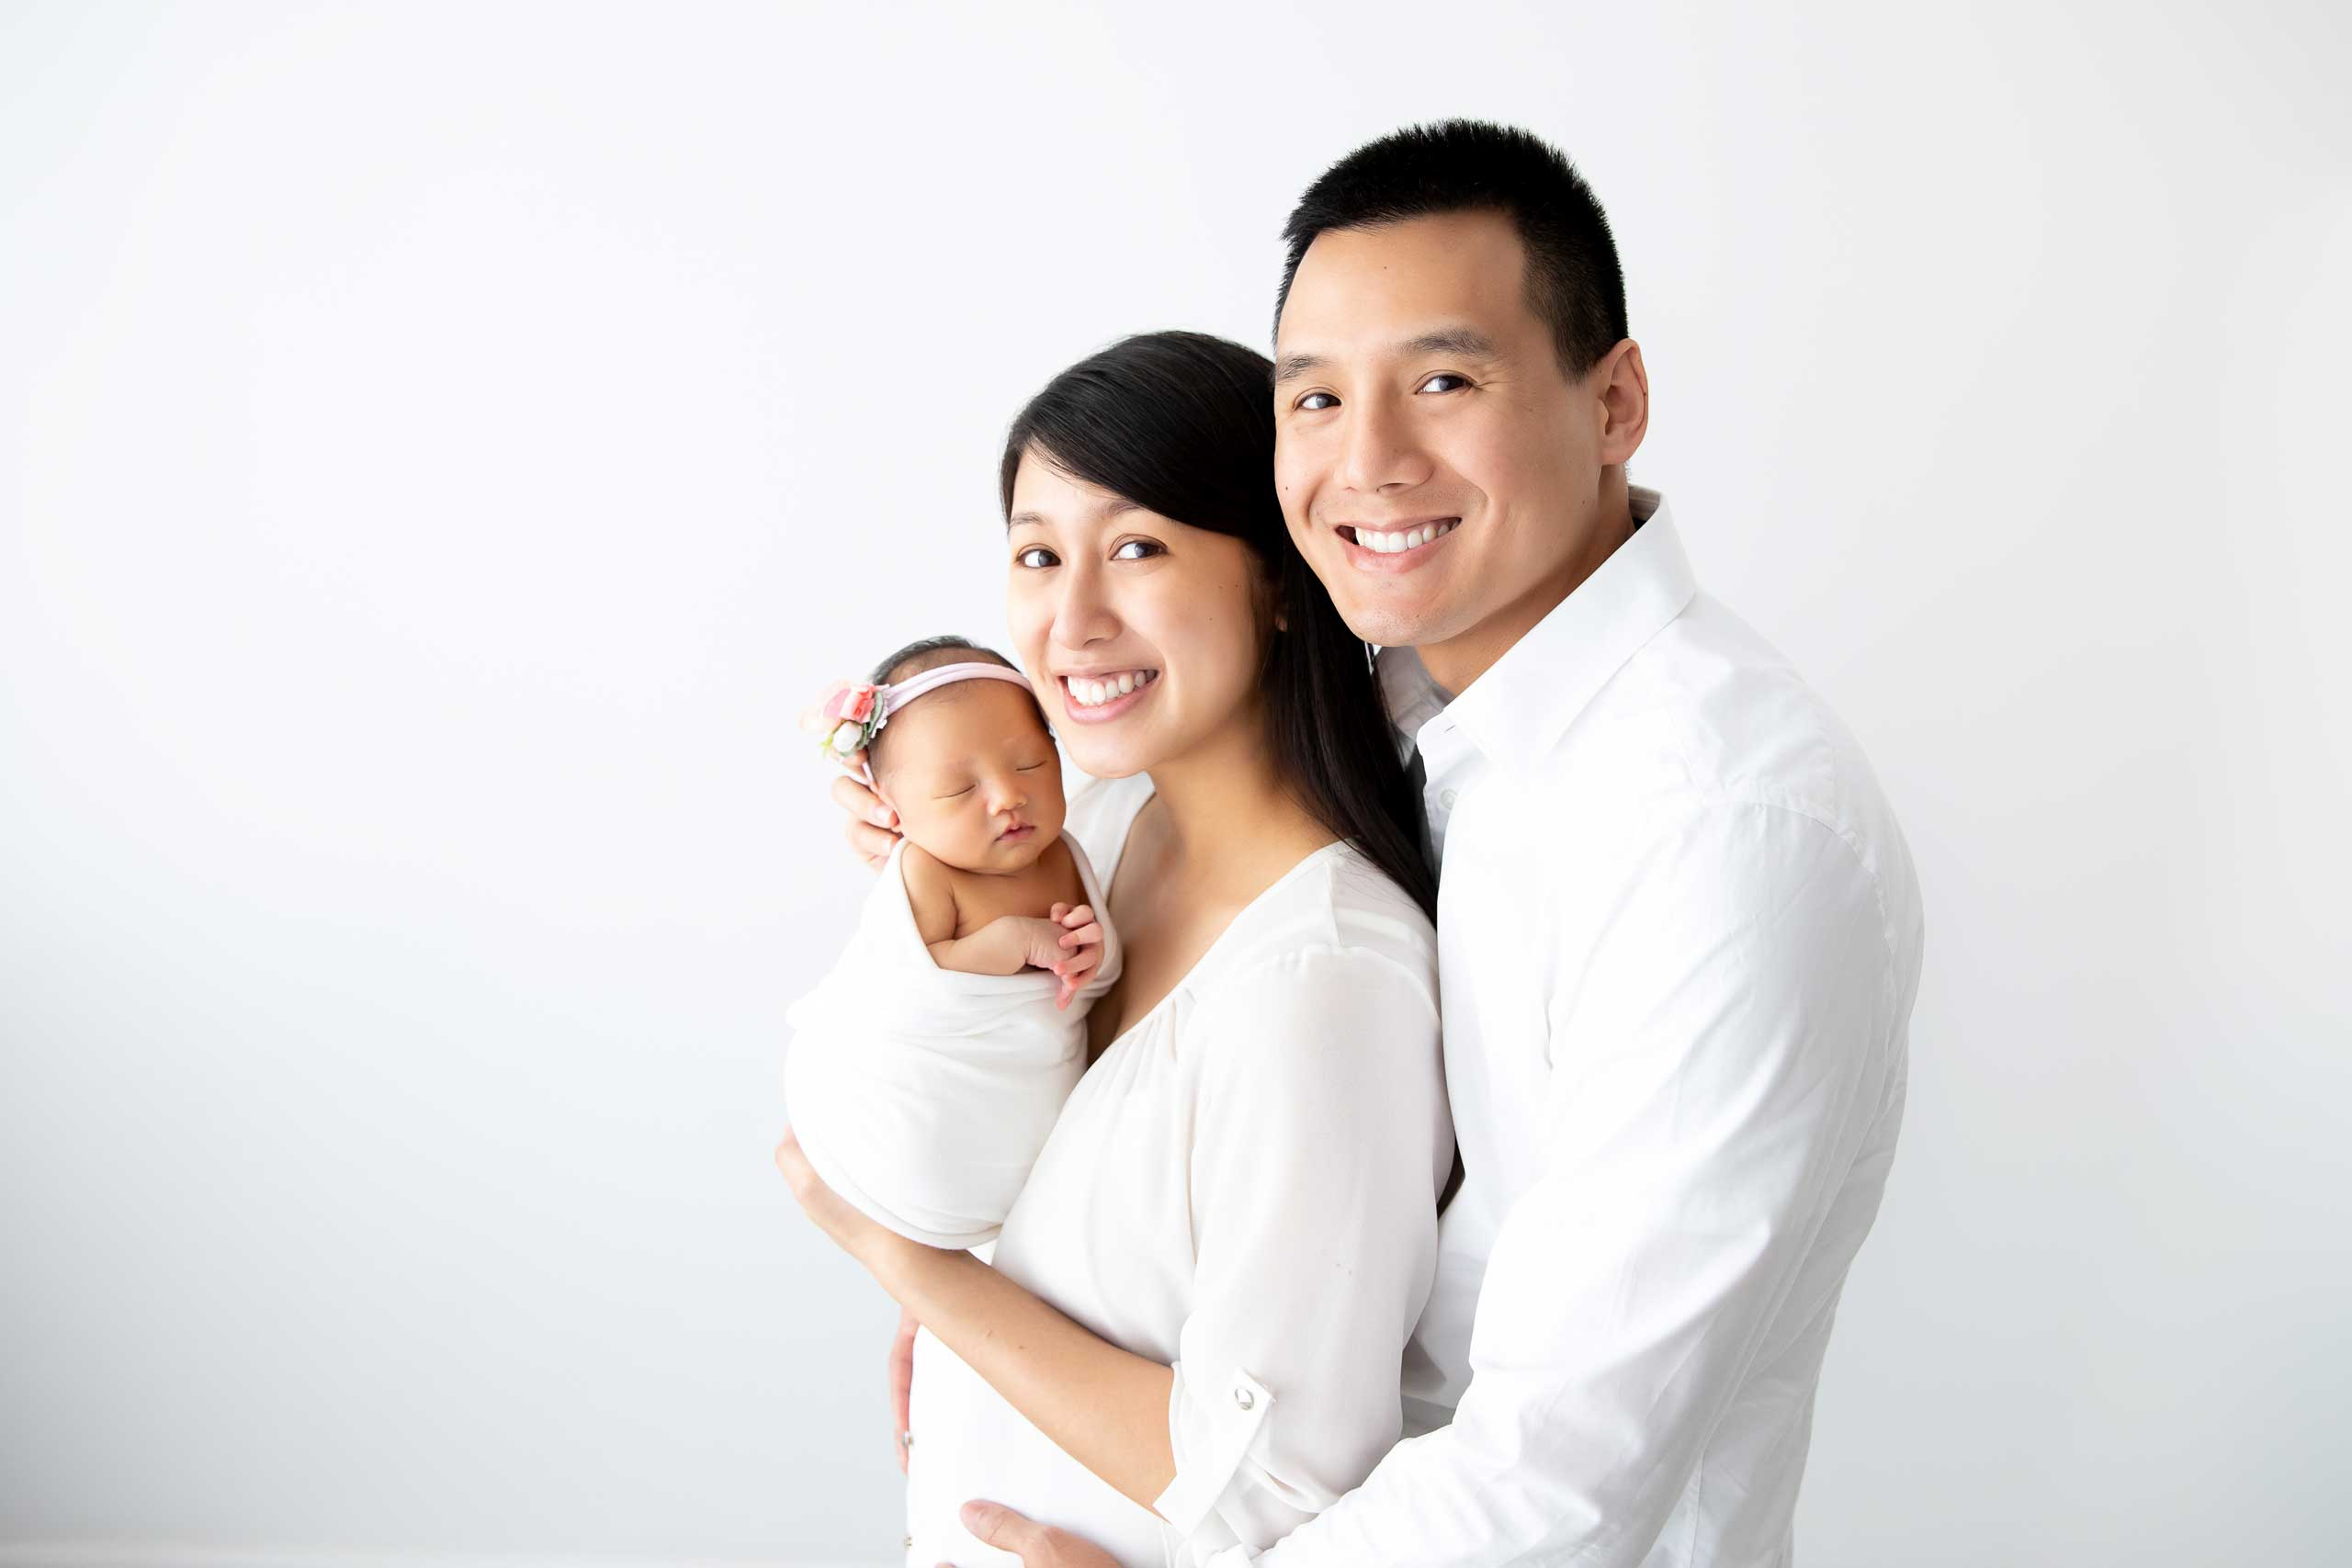 family baby newborn photograph taken in Los Angeles by Ramina Magid Photography